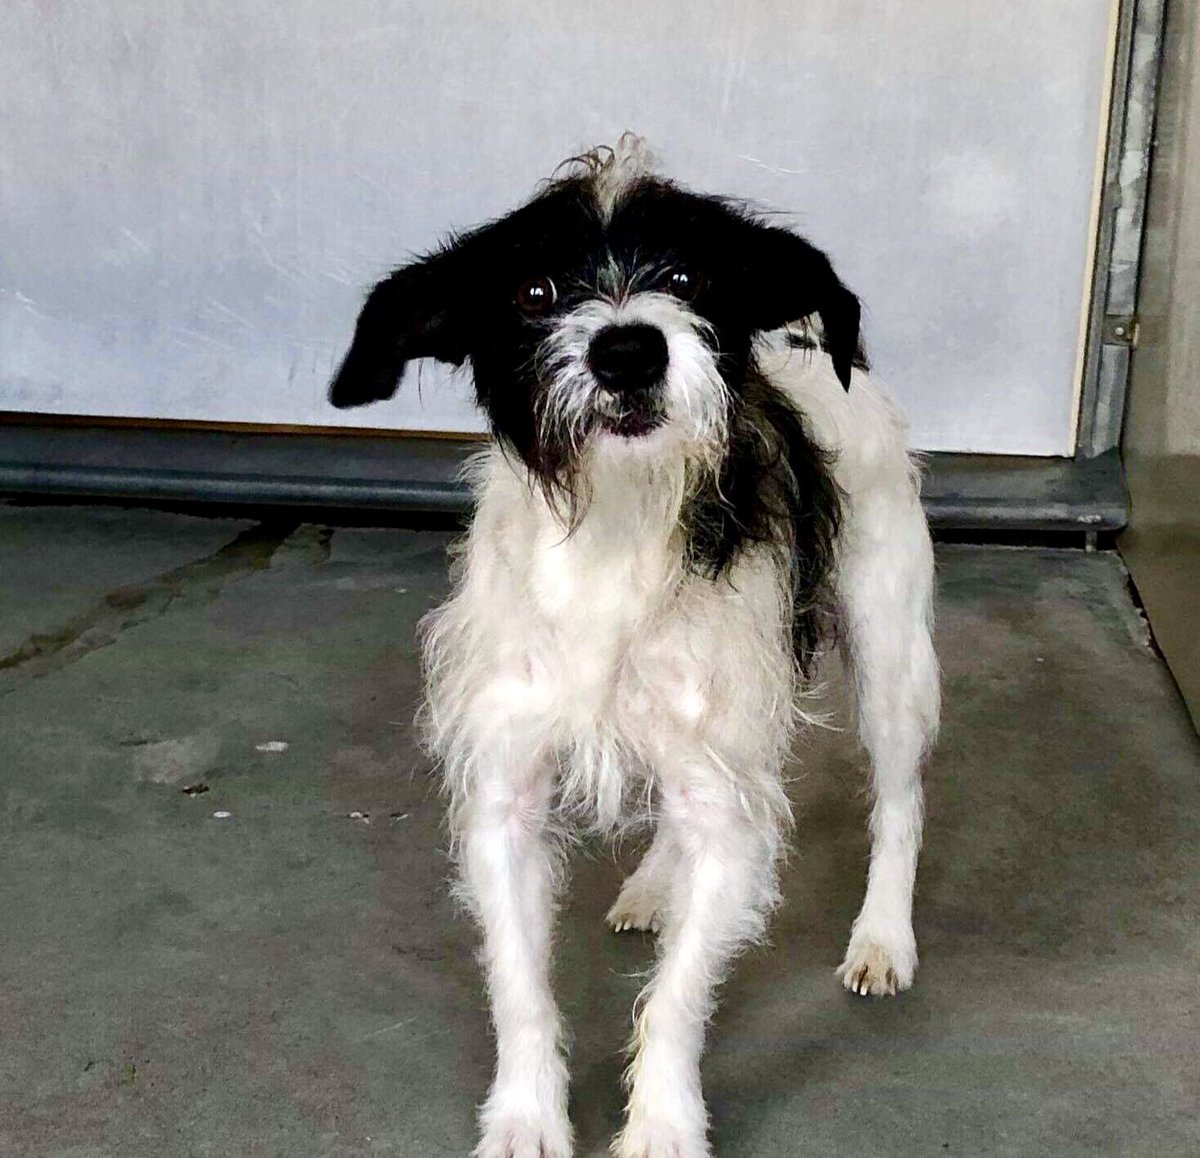 This weekend, plan a visit to your local rescue shelter, where your new best friend is waiting for you :) #adopt #rescue #foster #LucysLaw<br>http://pic.twitter.com/tQCbN1YsDo